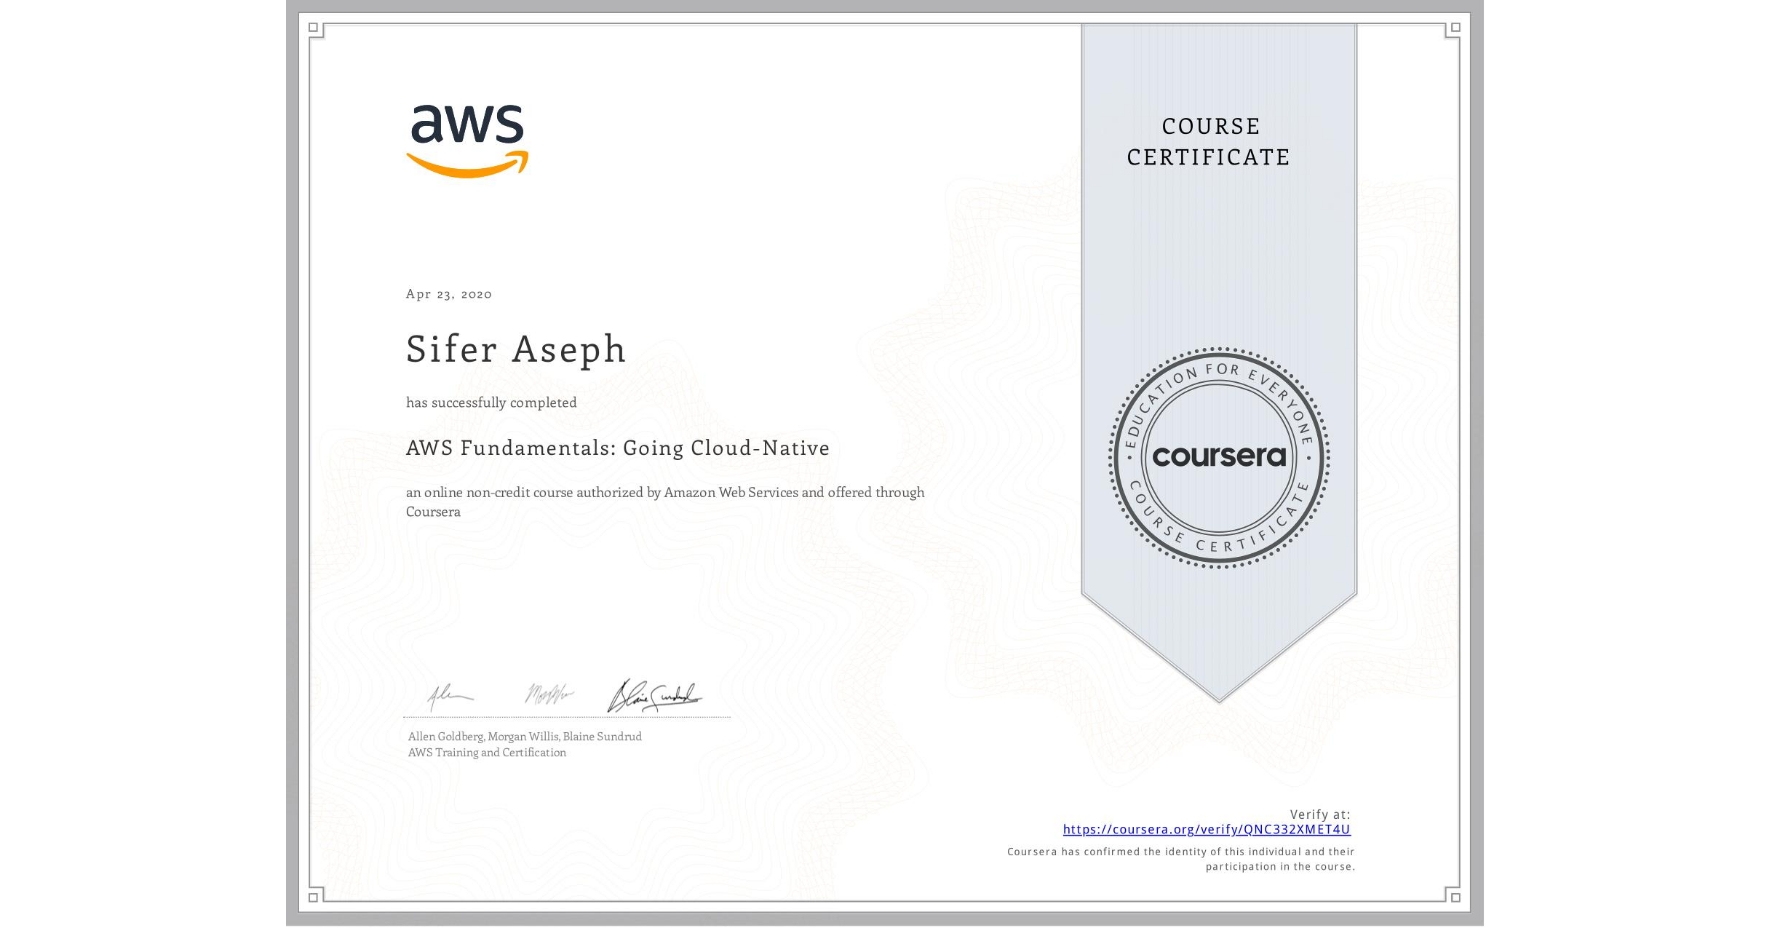 View certificate for Sifer Aseph, AWS Fundamentals: Going Cloud-Native, an online non-credit course authorized by Amazon Web Services and offered through Coursera